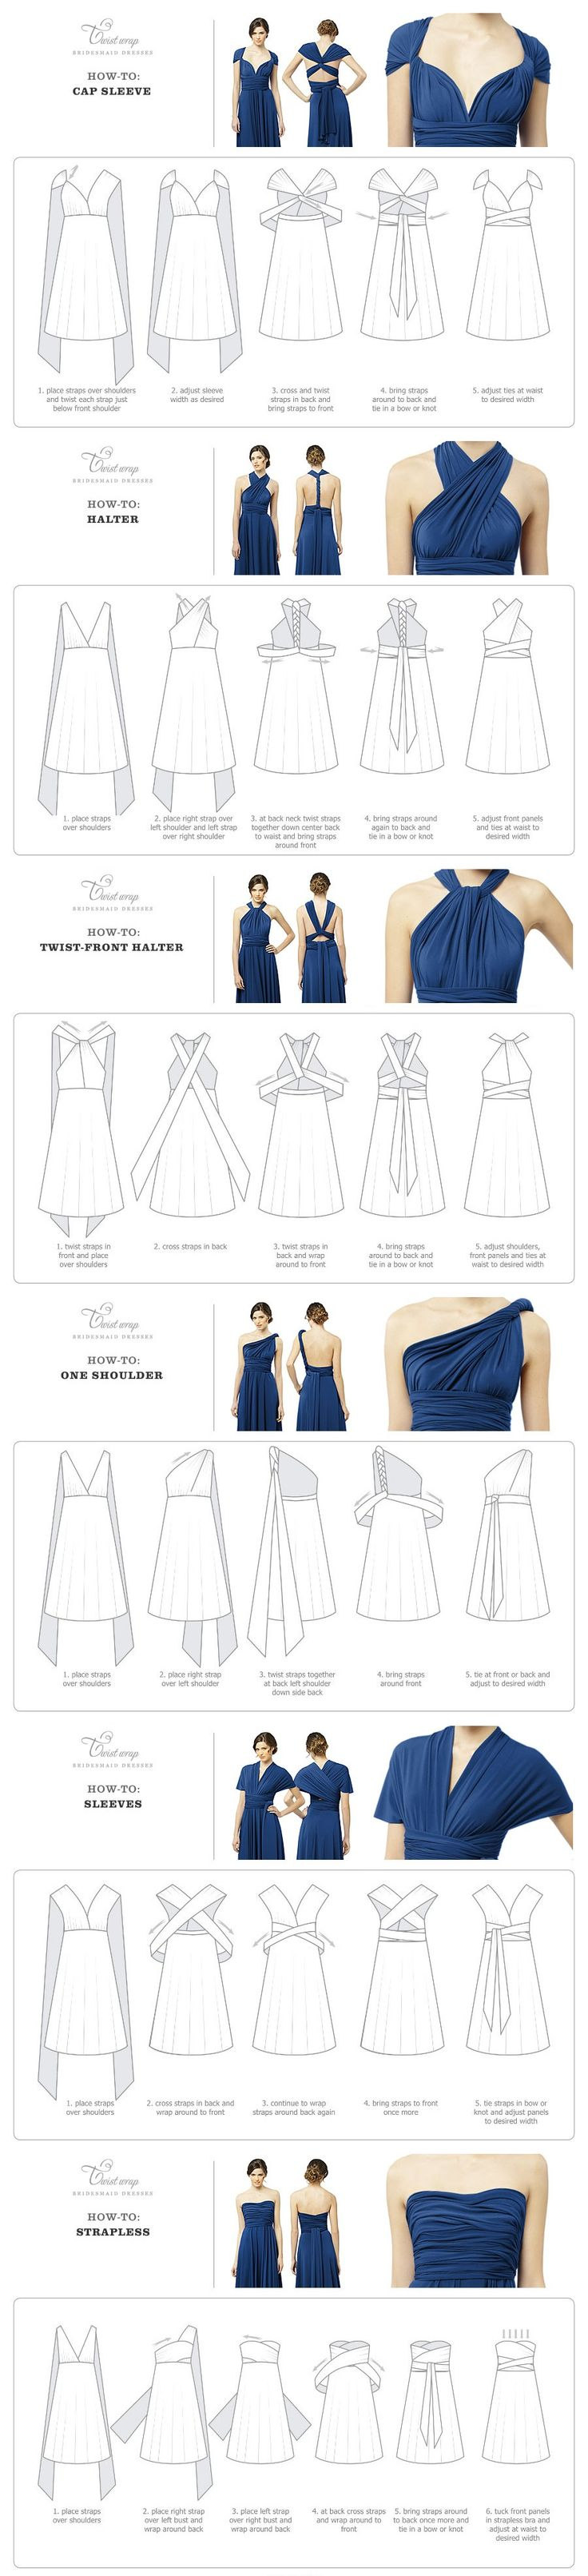 Twist Wrap Dress - How-To-Wear instructions - need to buy one of these.